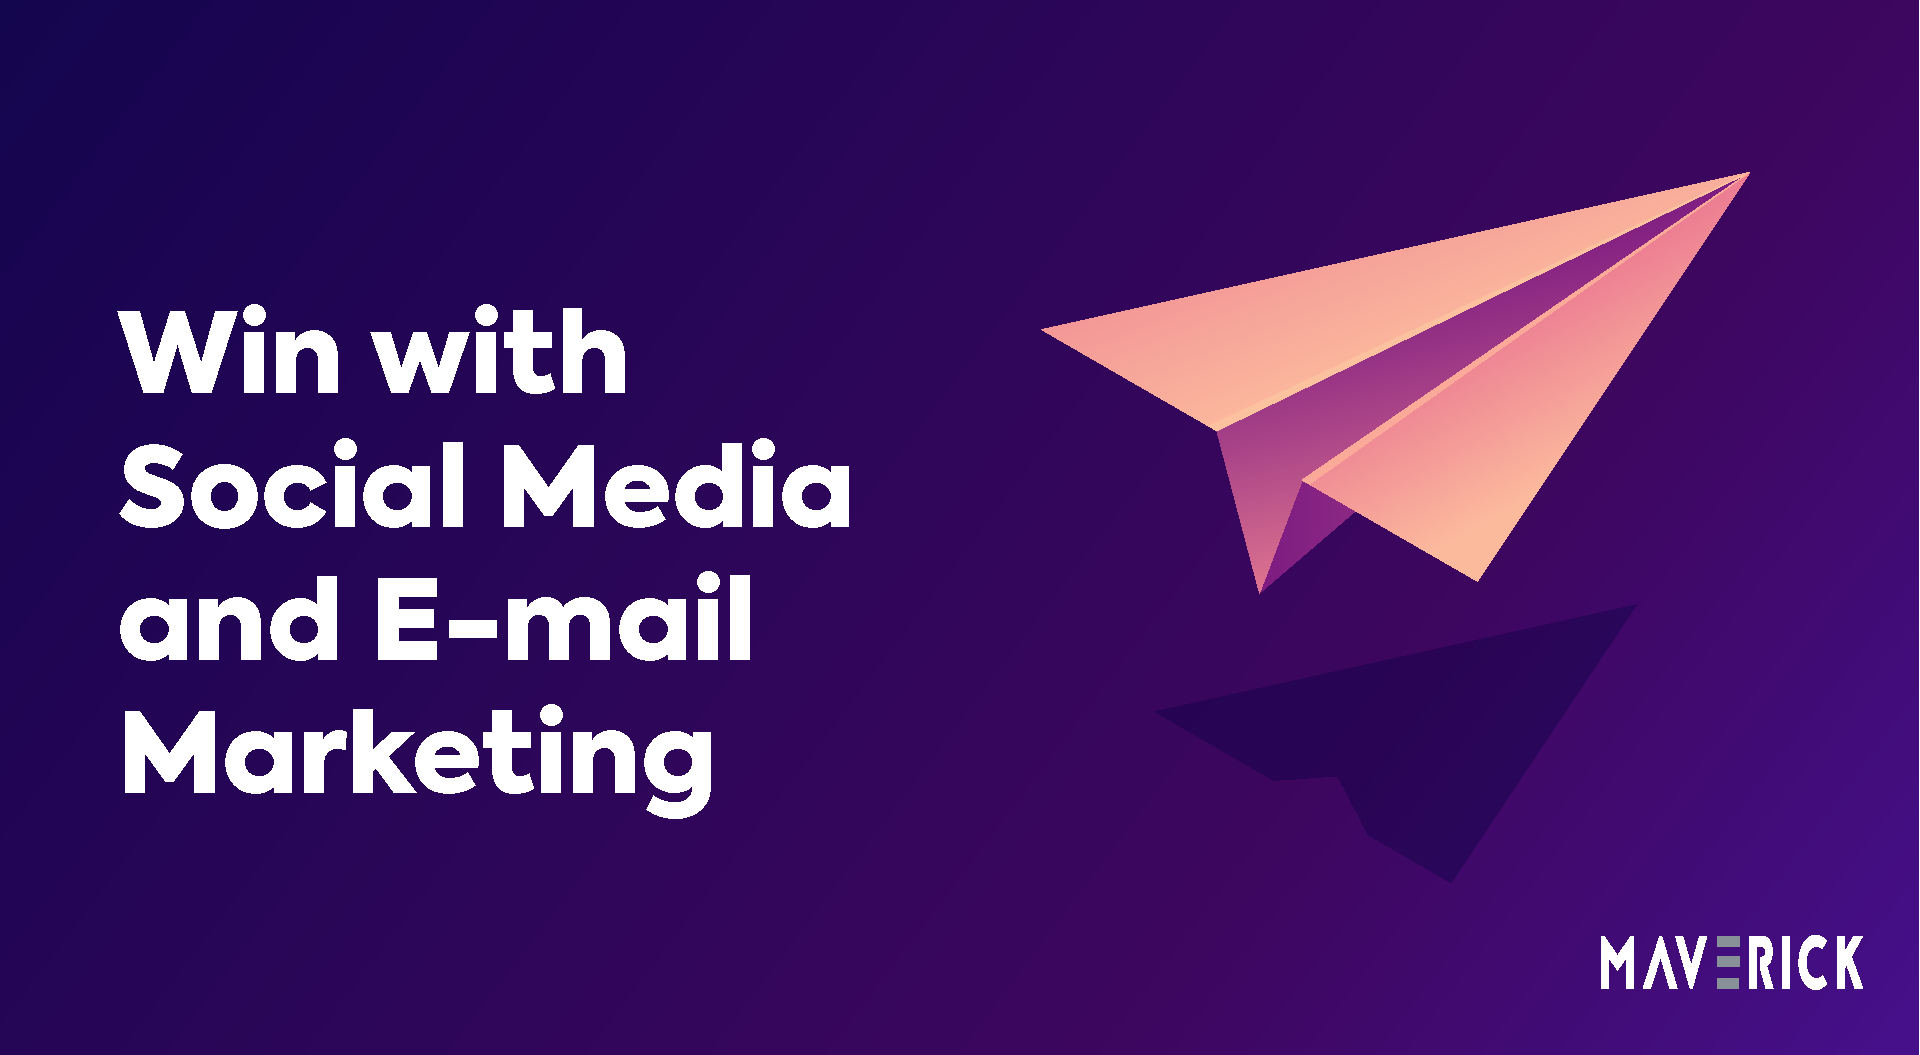 Social Media and E-mail Marketing